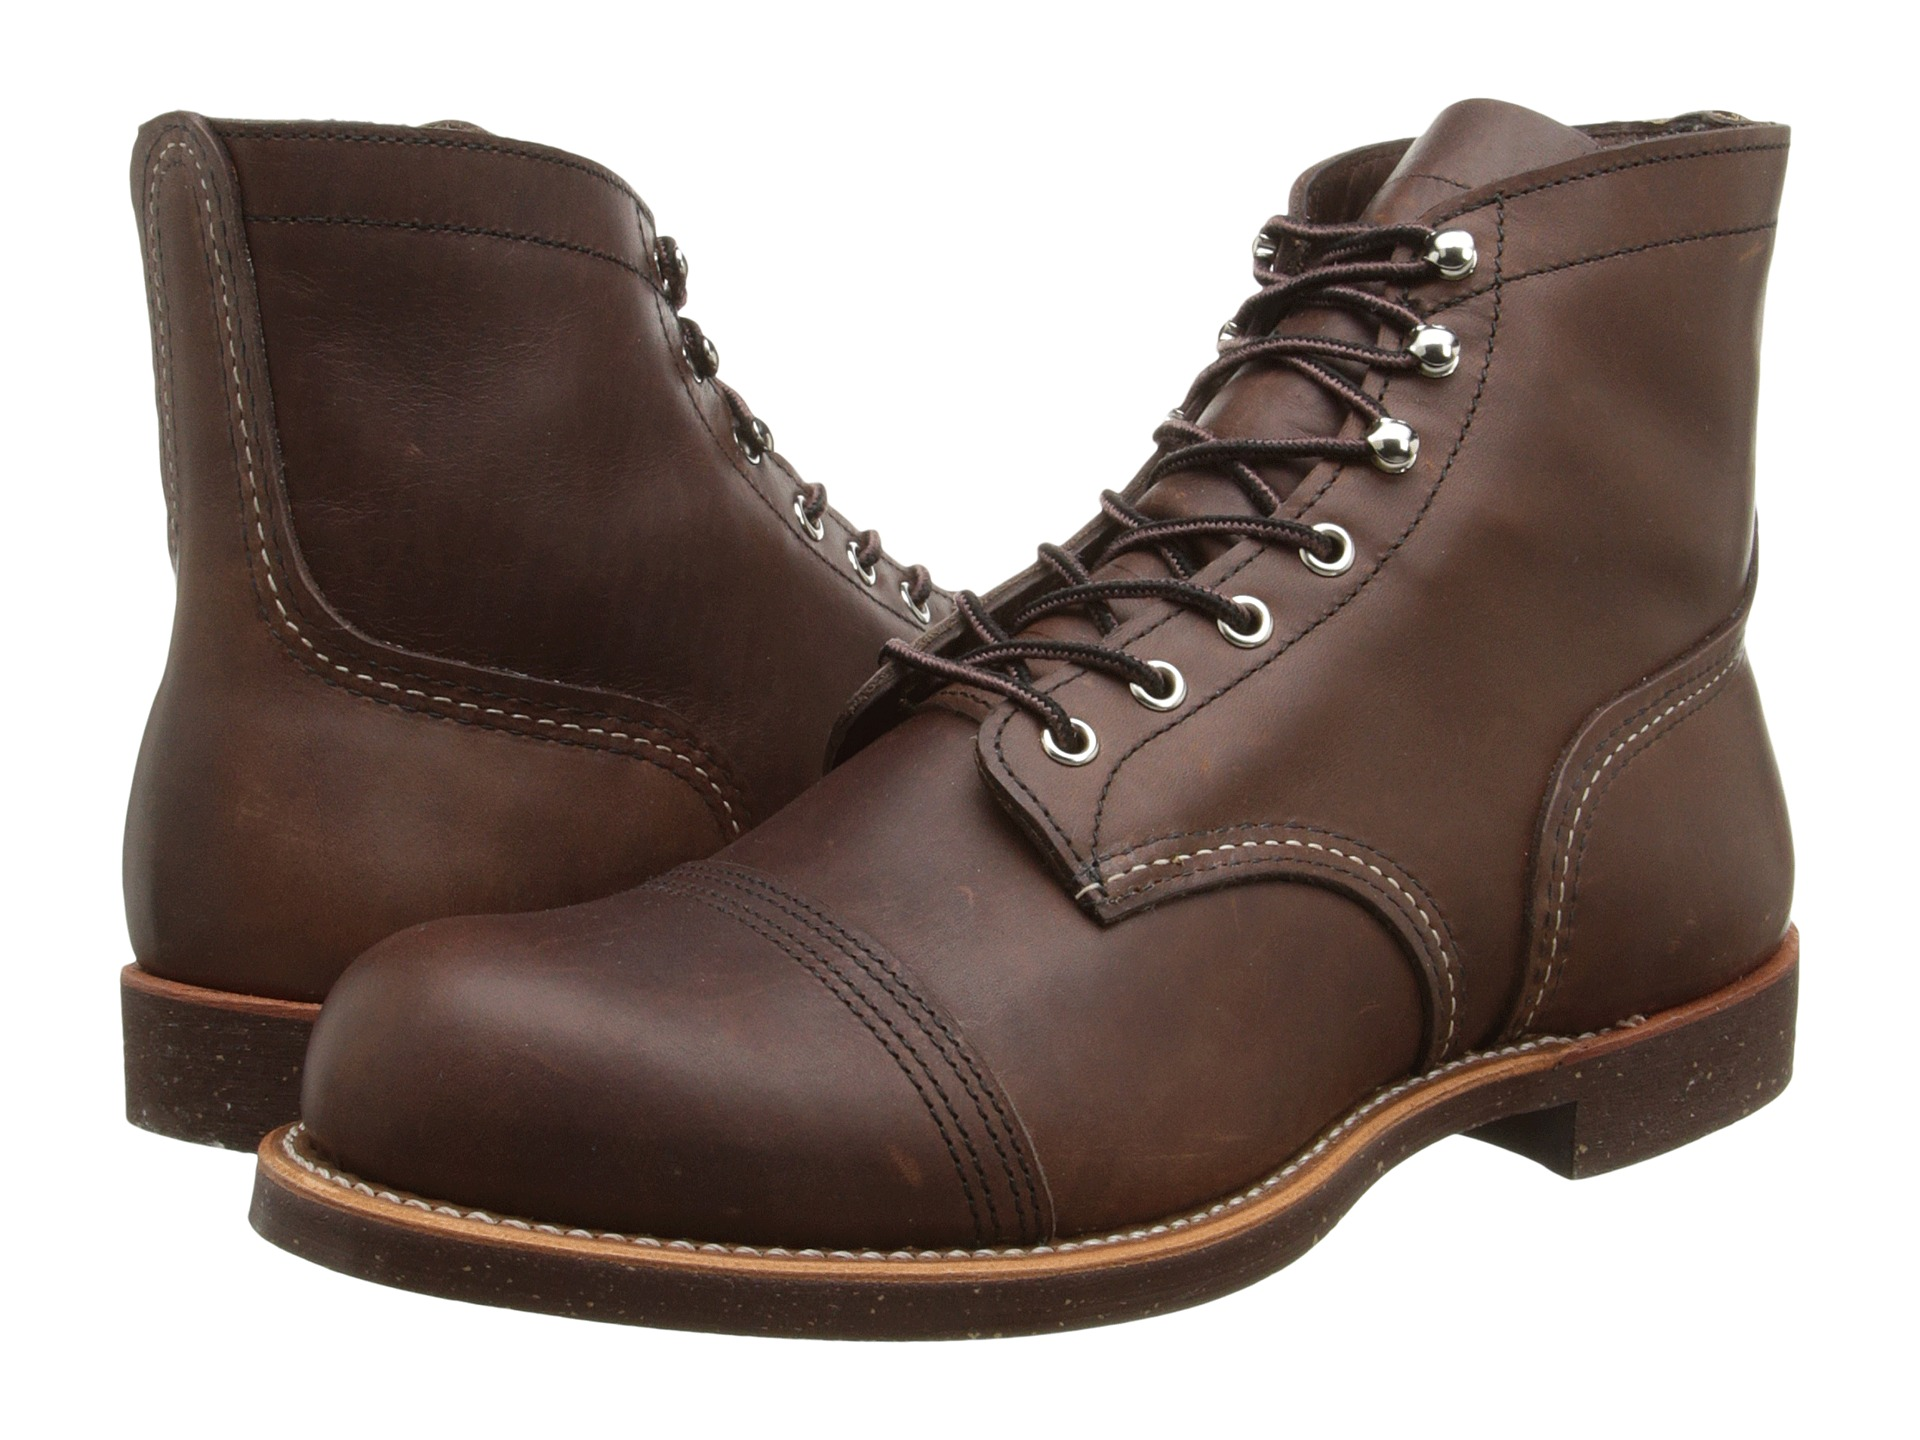 Made.Goods Red Wing Boots 8111红翼美产手工靴